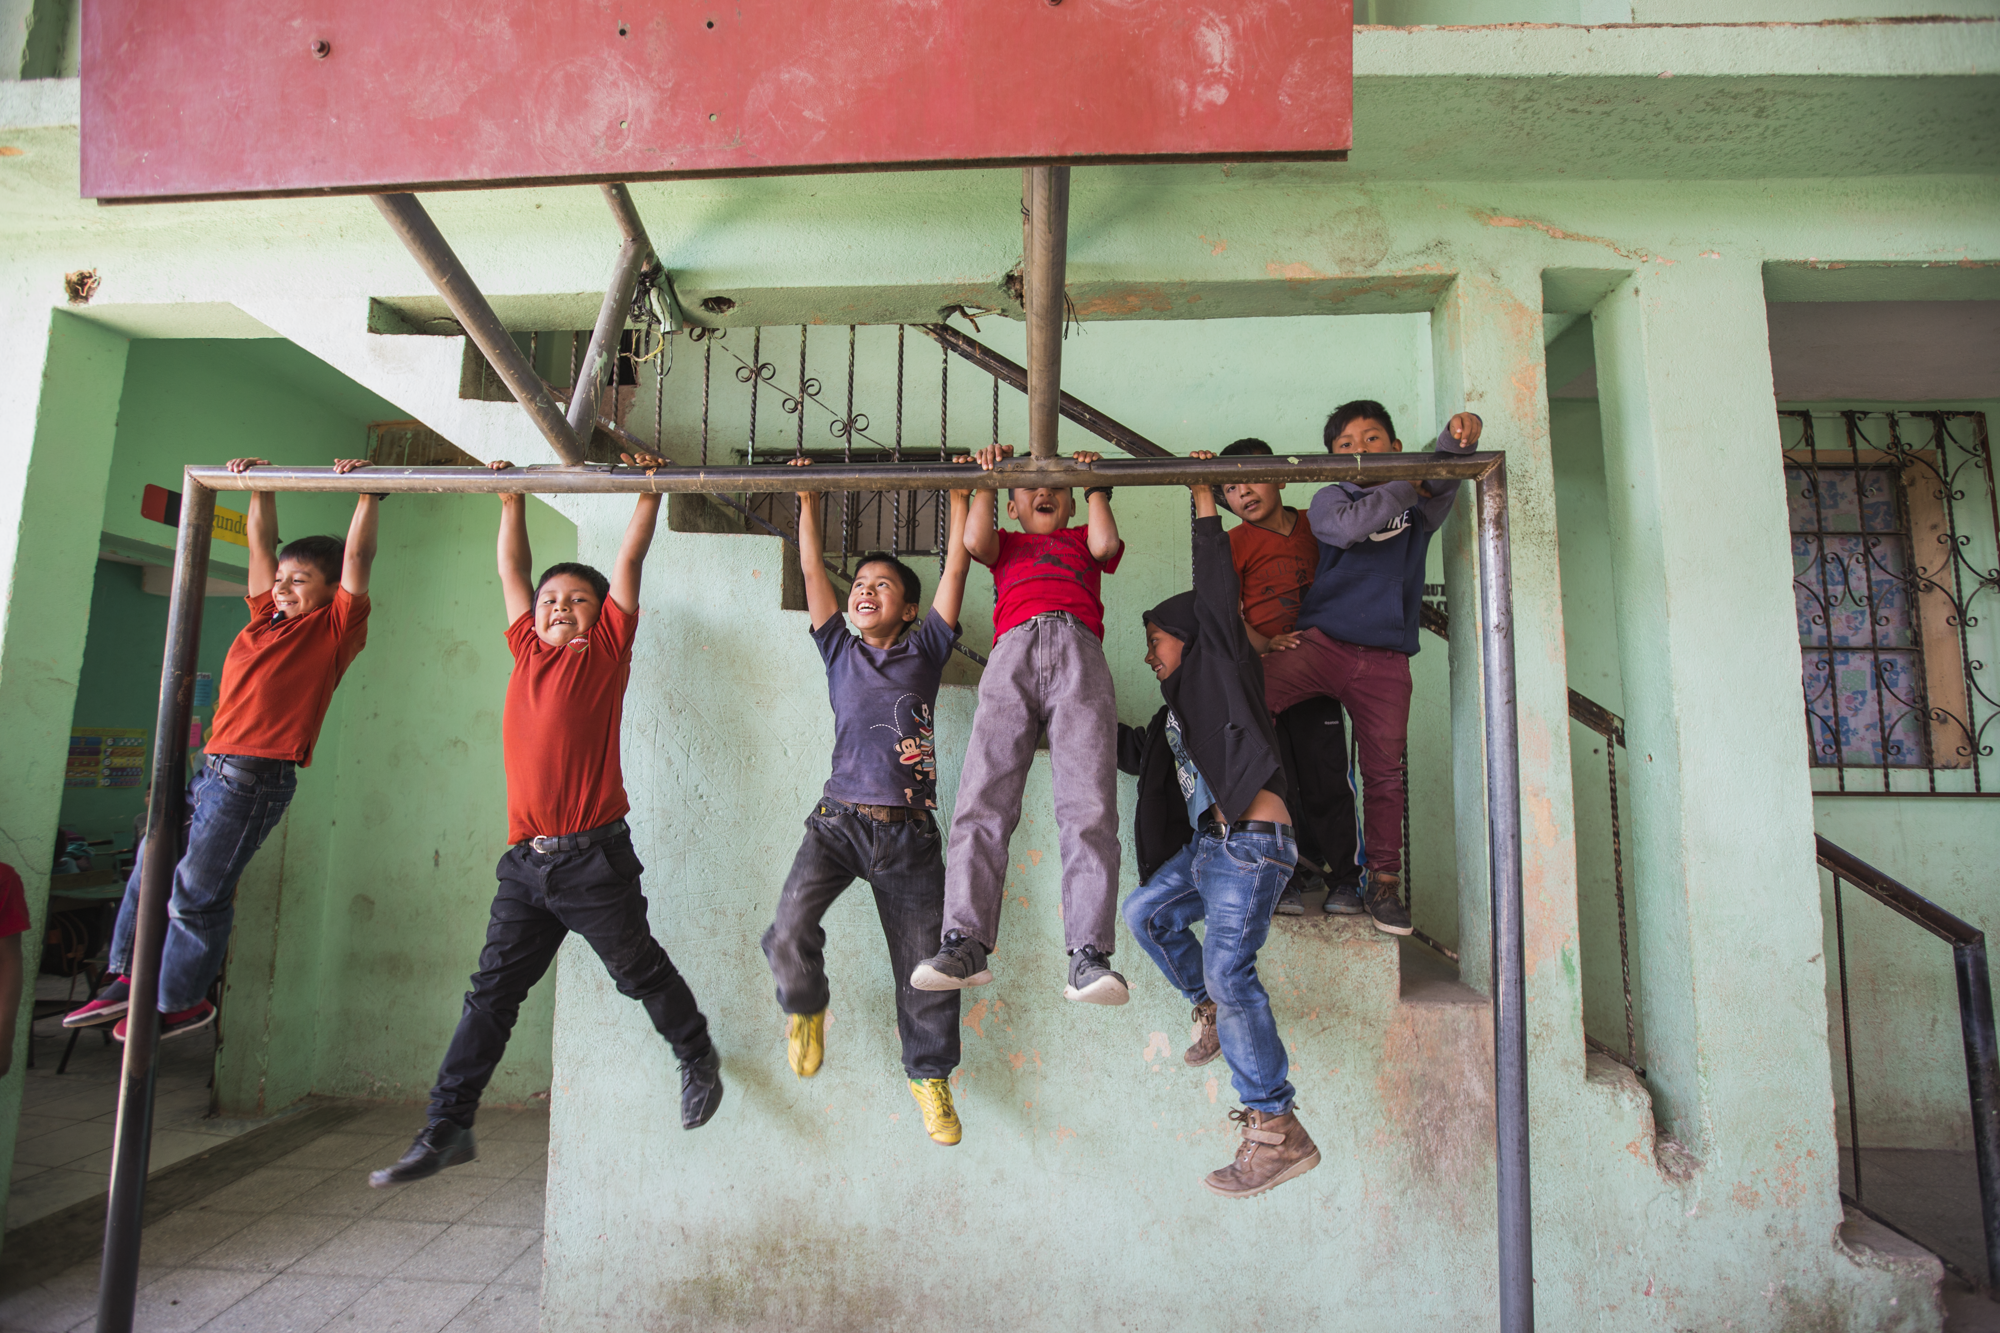 Kids hang from a soccer goal post during their lunch break at school in Tierra Linda, Guatemala. Tierra Linda is a small community up in the highlands of Guatemala where many indigenous people live.